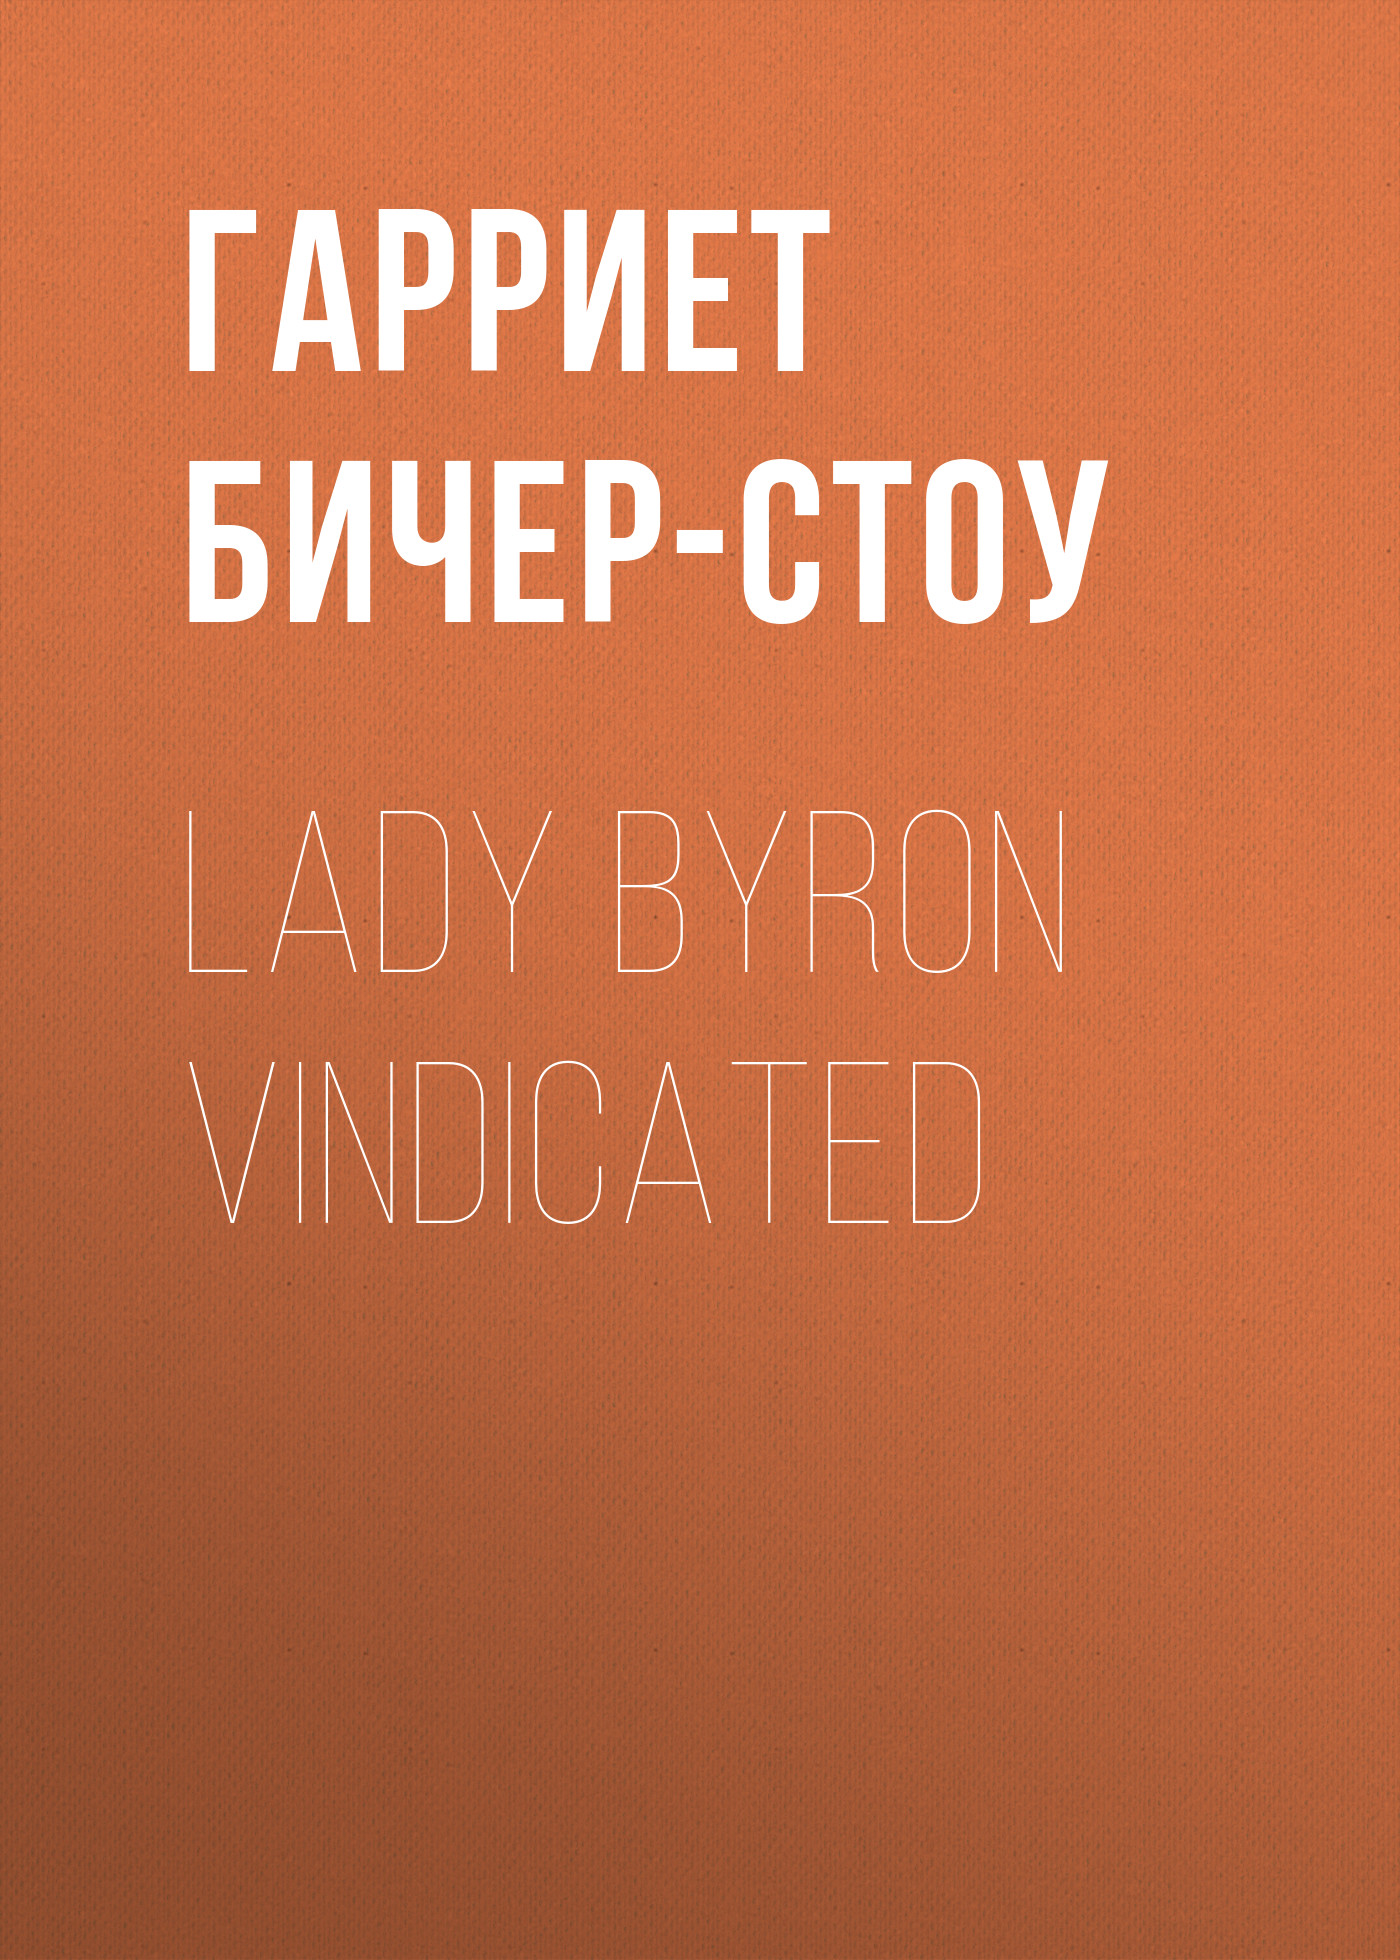 Lady Byron Vindicated